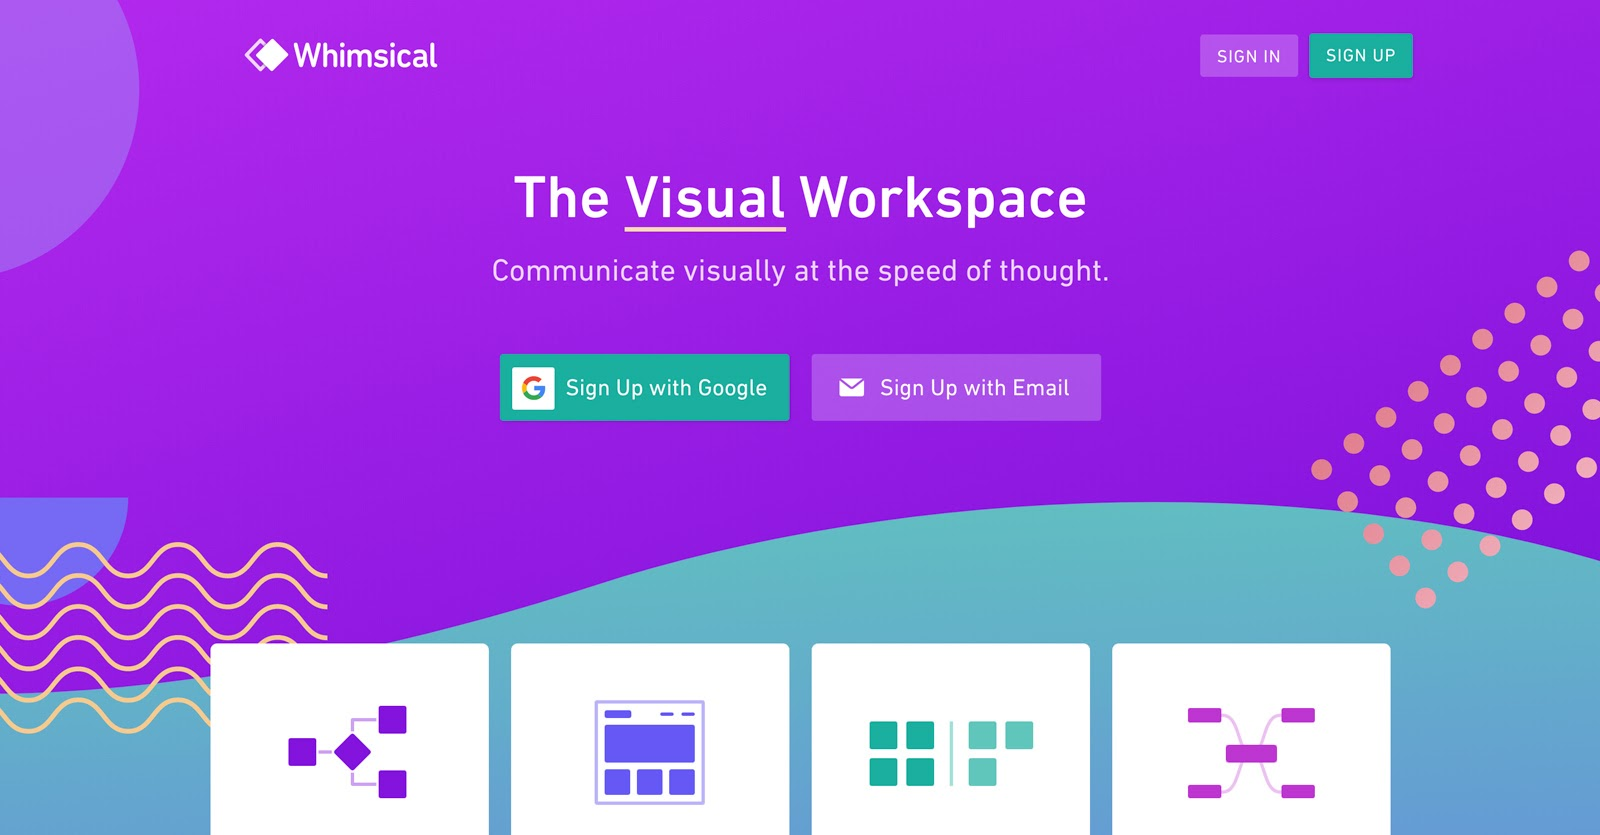 whimsical's visual workspace